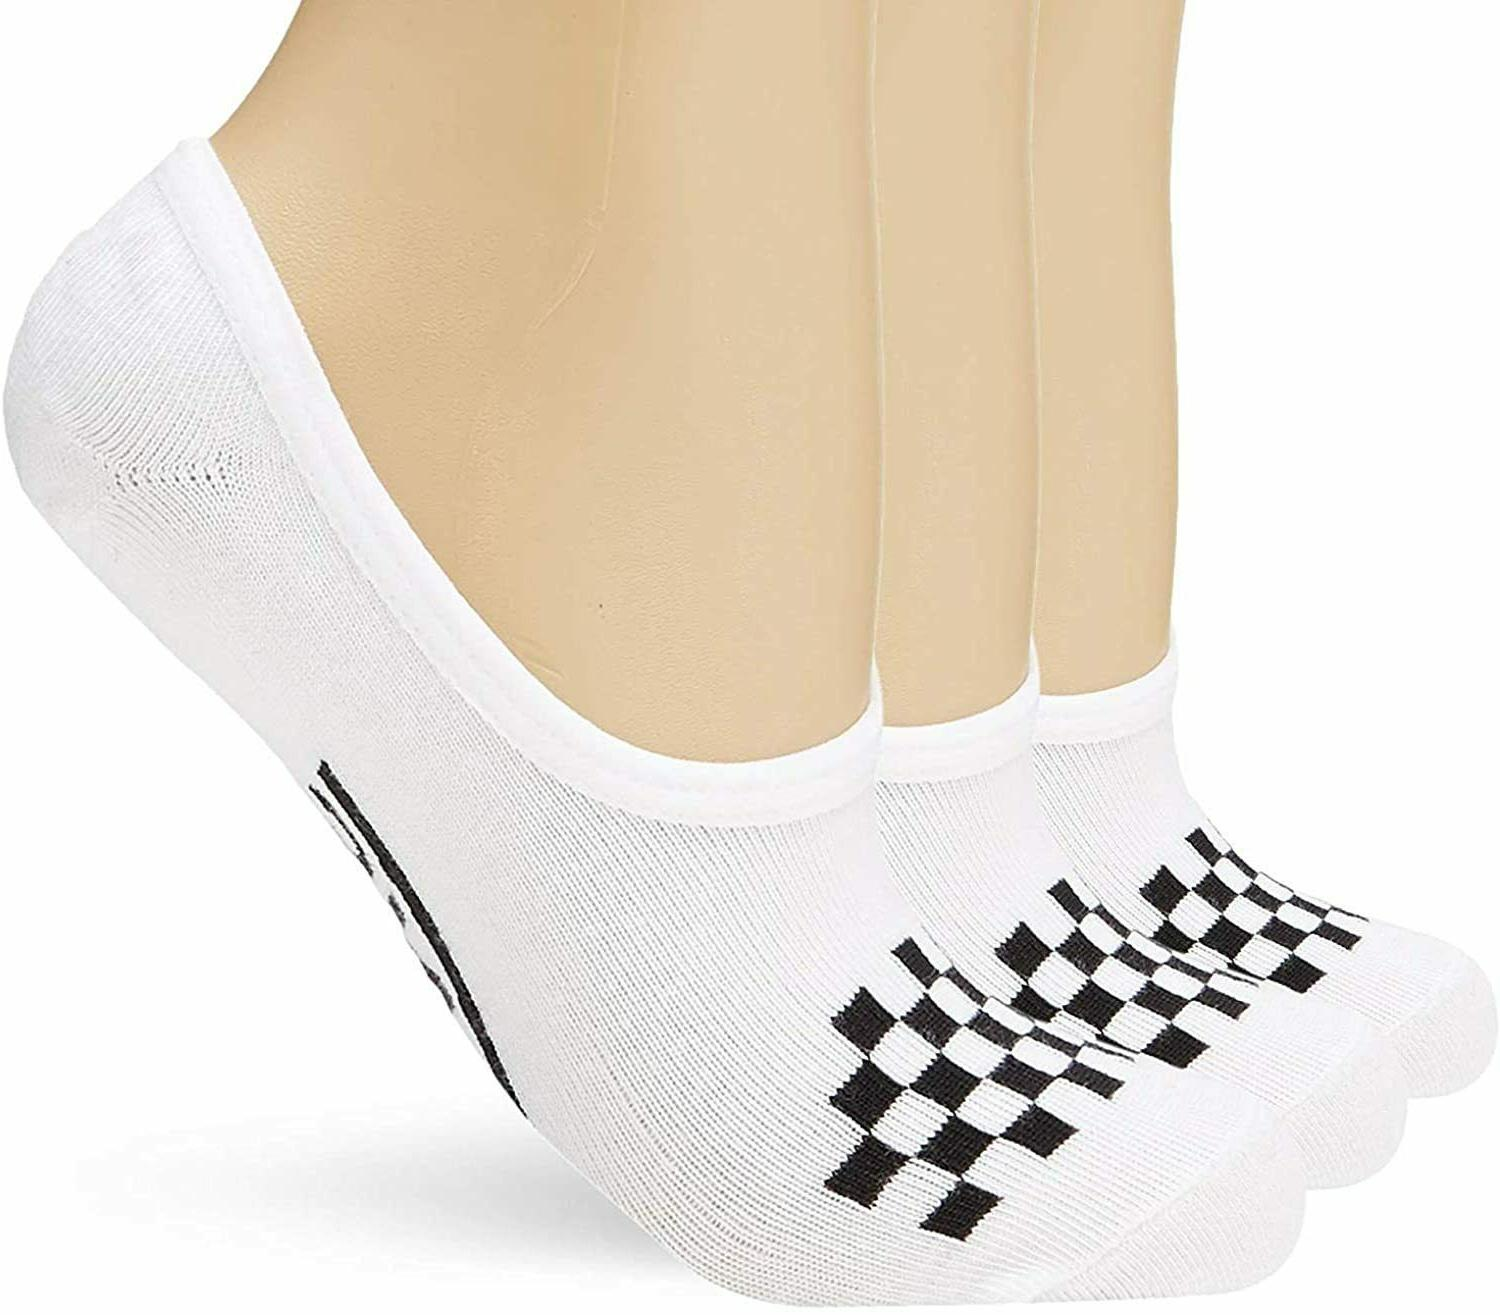 Vans Basic Canoodle Women's Socks 3 Pack White/Black